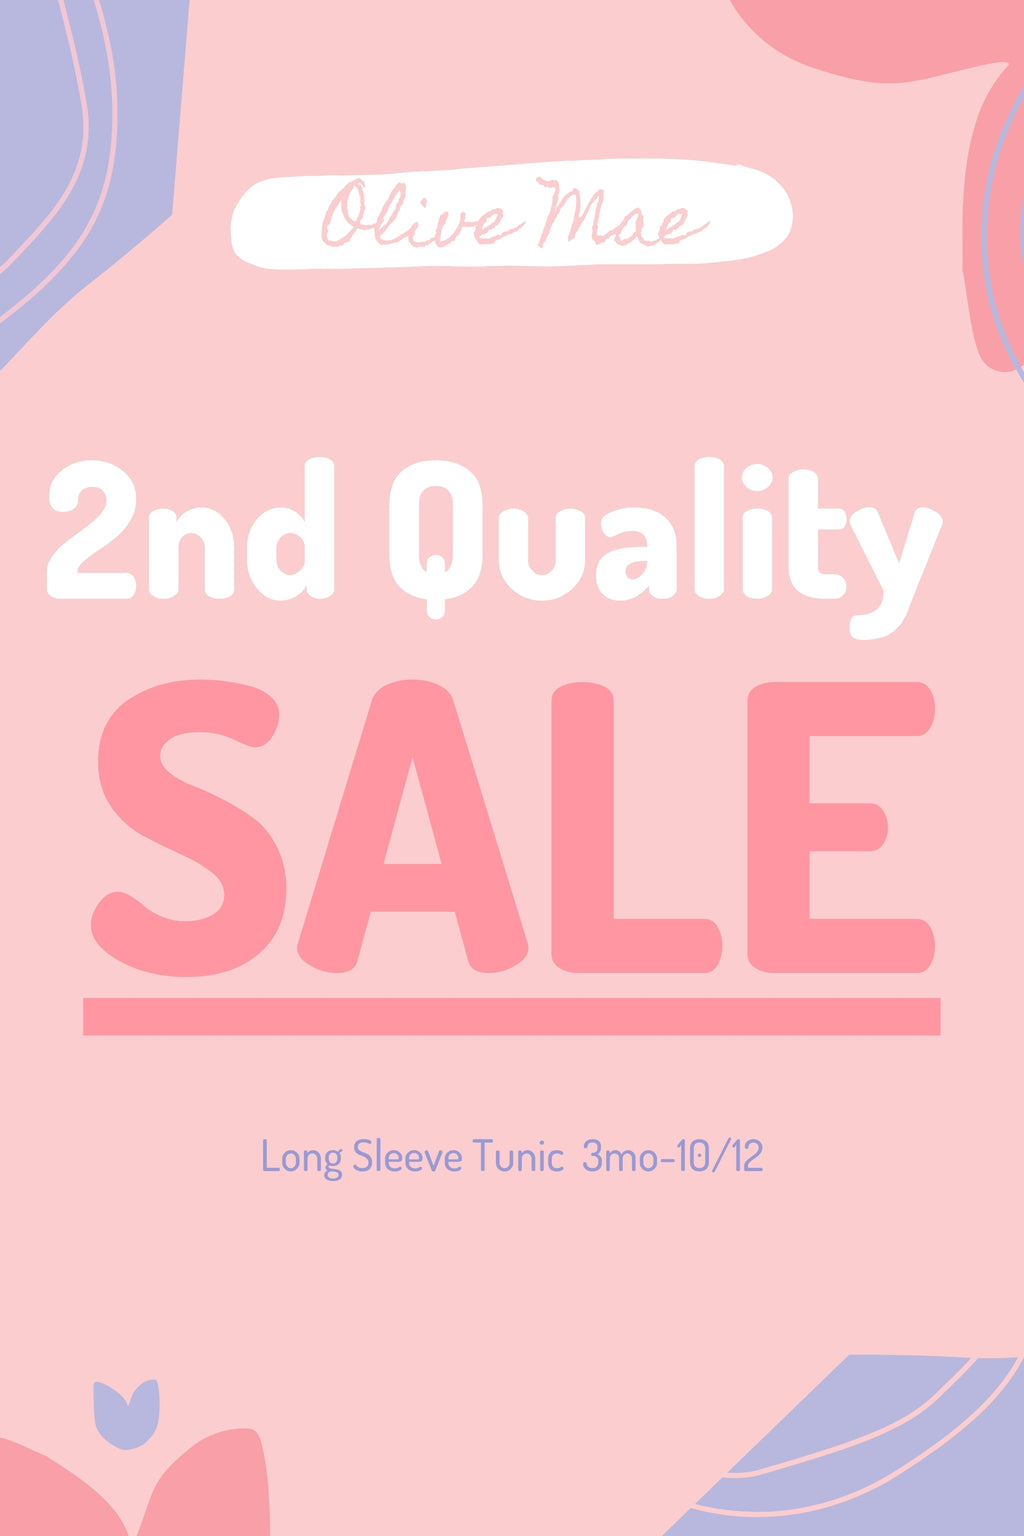 Long Sleeve Tunic - 2nd quality sale